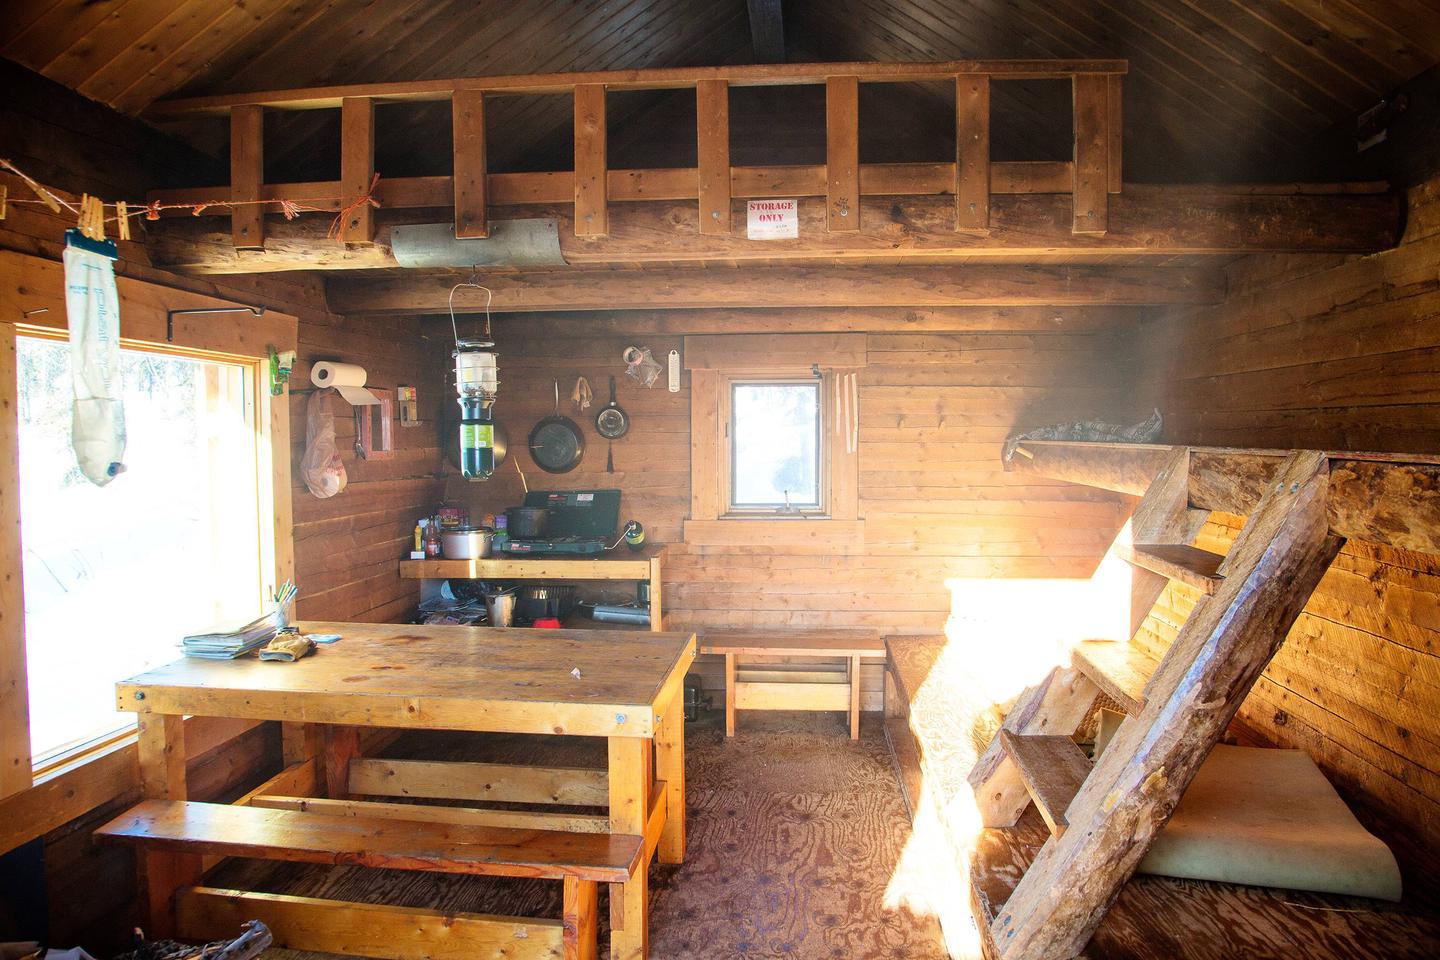 A log cabin interior includes bunks, a table with benches, and a loft.Bunks and cooking/eating area in Borealis-LeFevre Cabin.